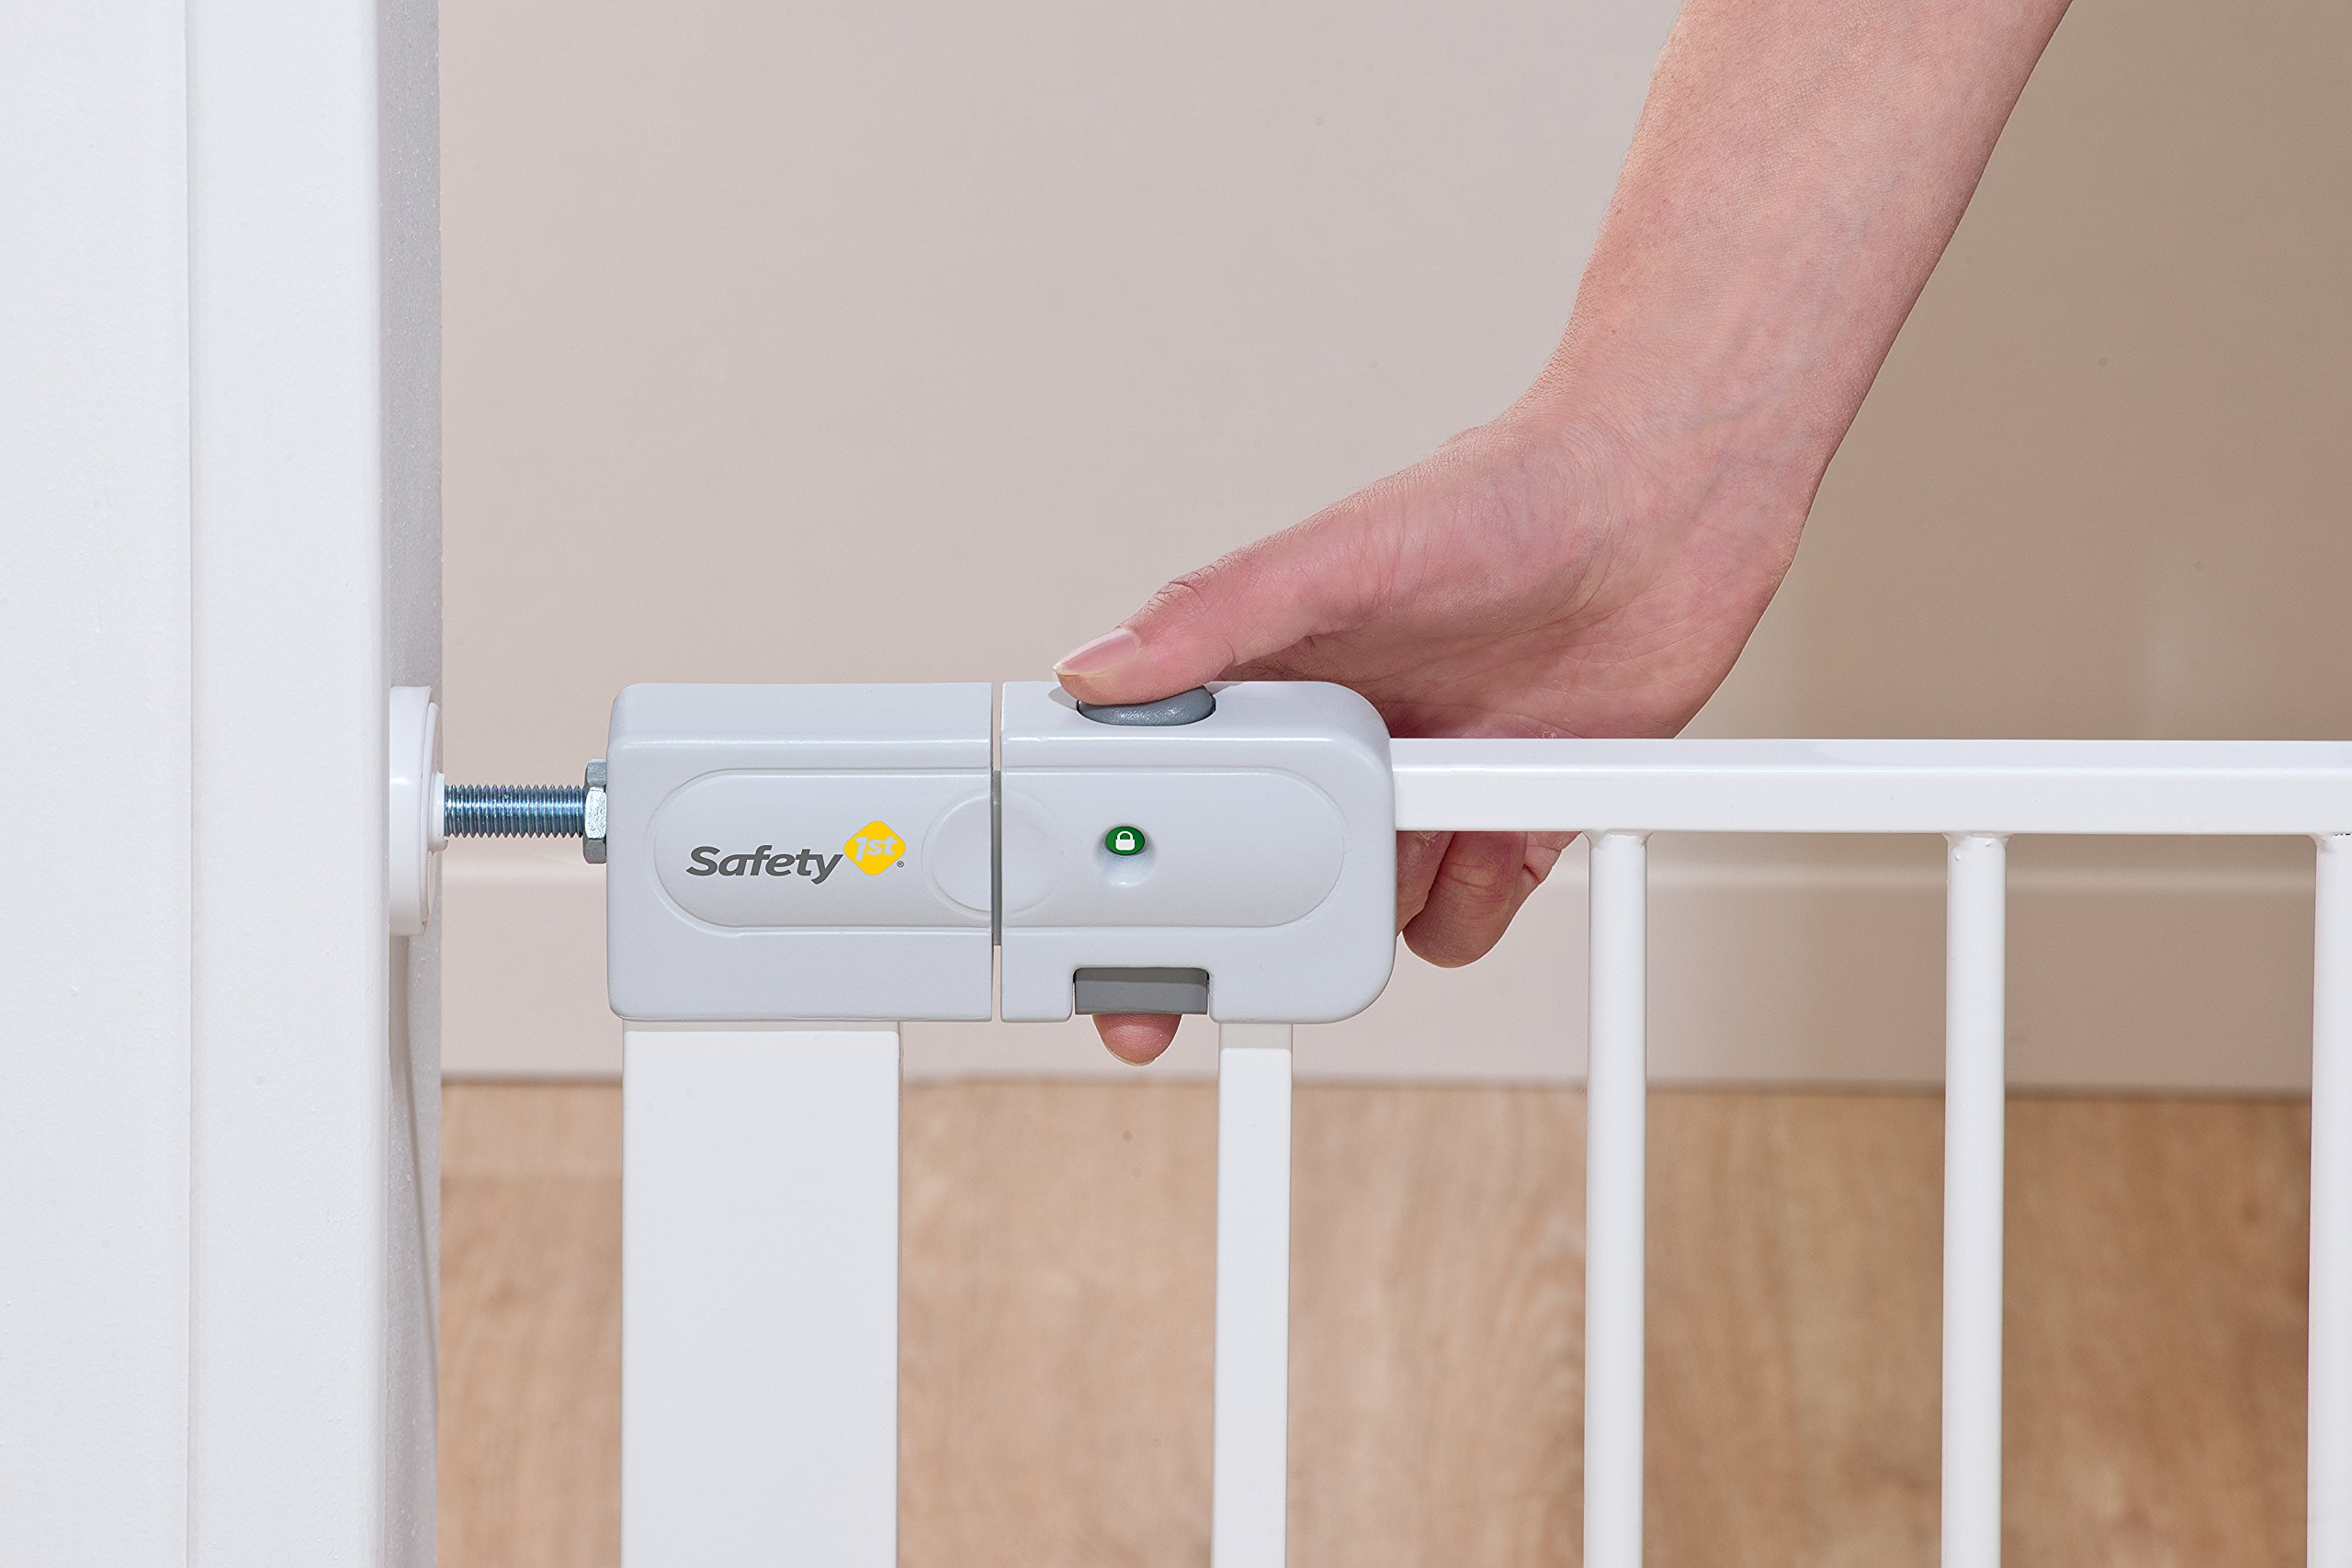 Safety 1st Securtech Auto Close Metal Gate, White  'True' Auto Close Gate which automatically closes for all opening angles Adjusts to fit openings from 73 cm to 80 cm Extends up to 136 cm with separately available extensions 3